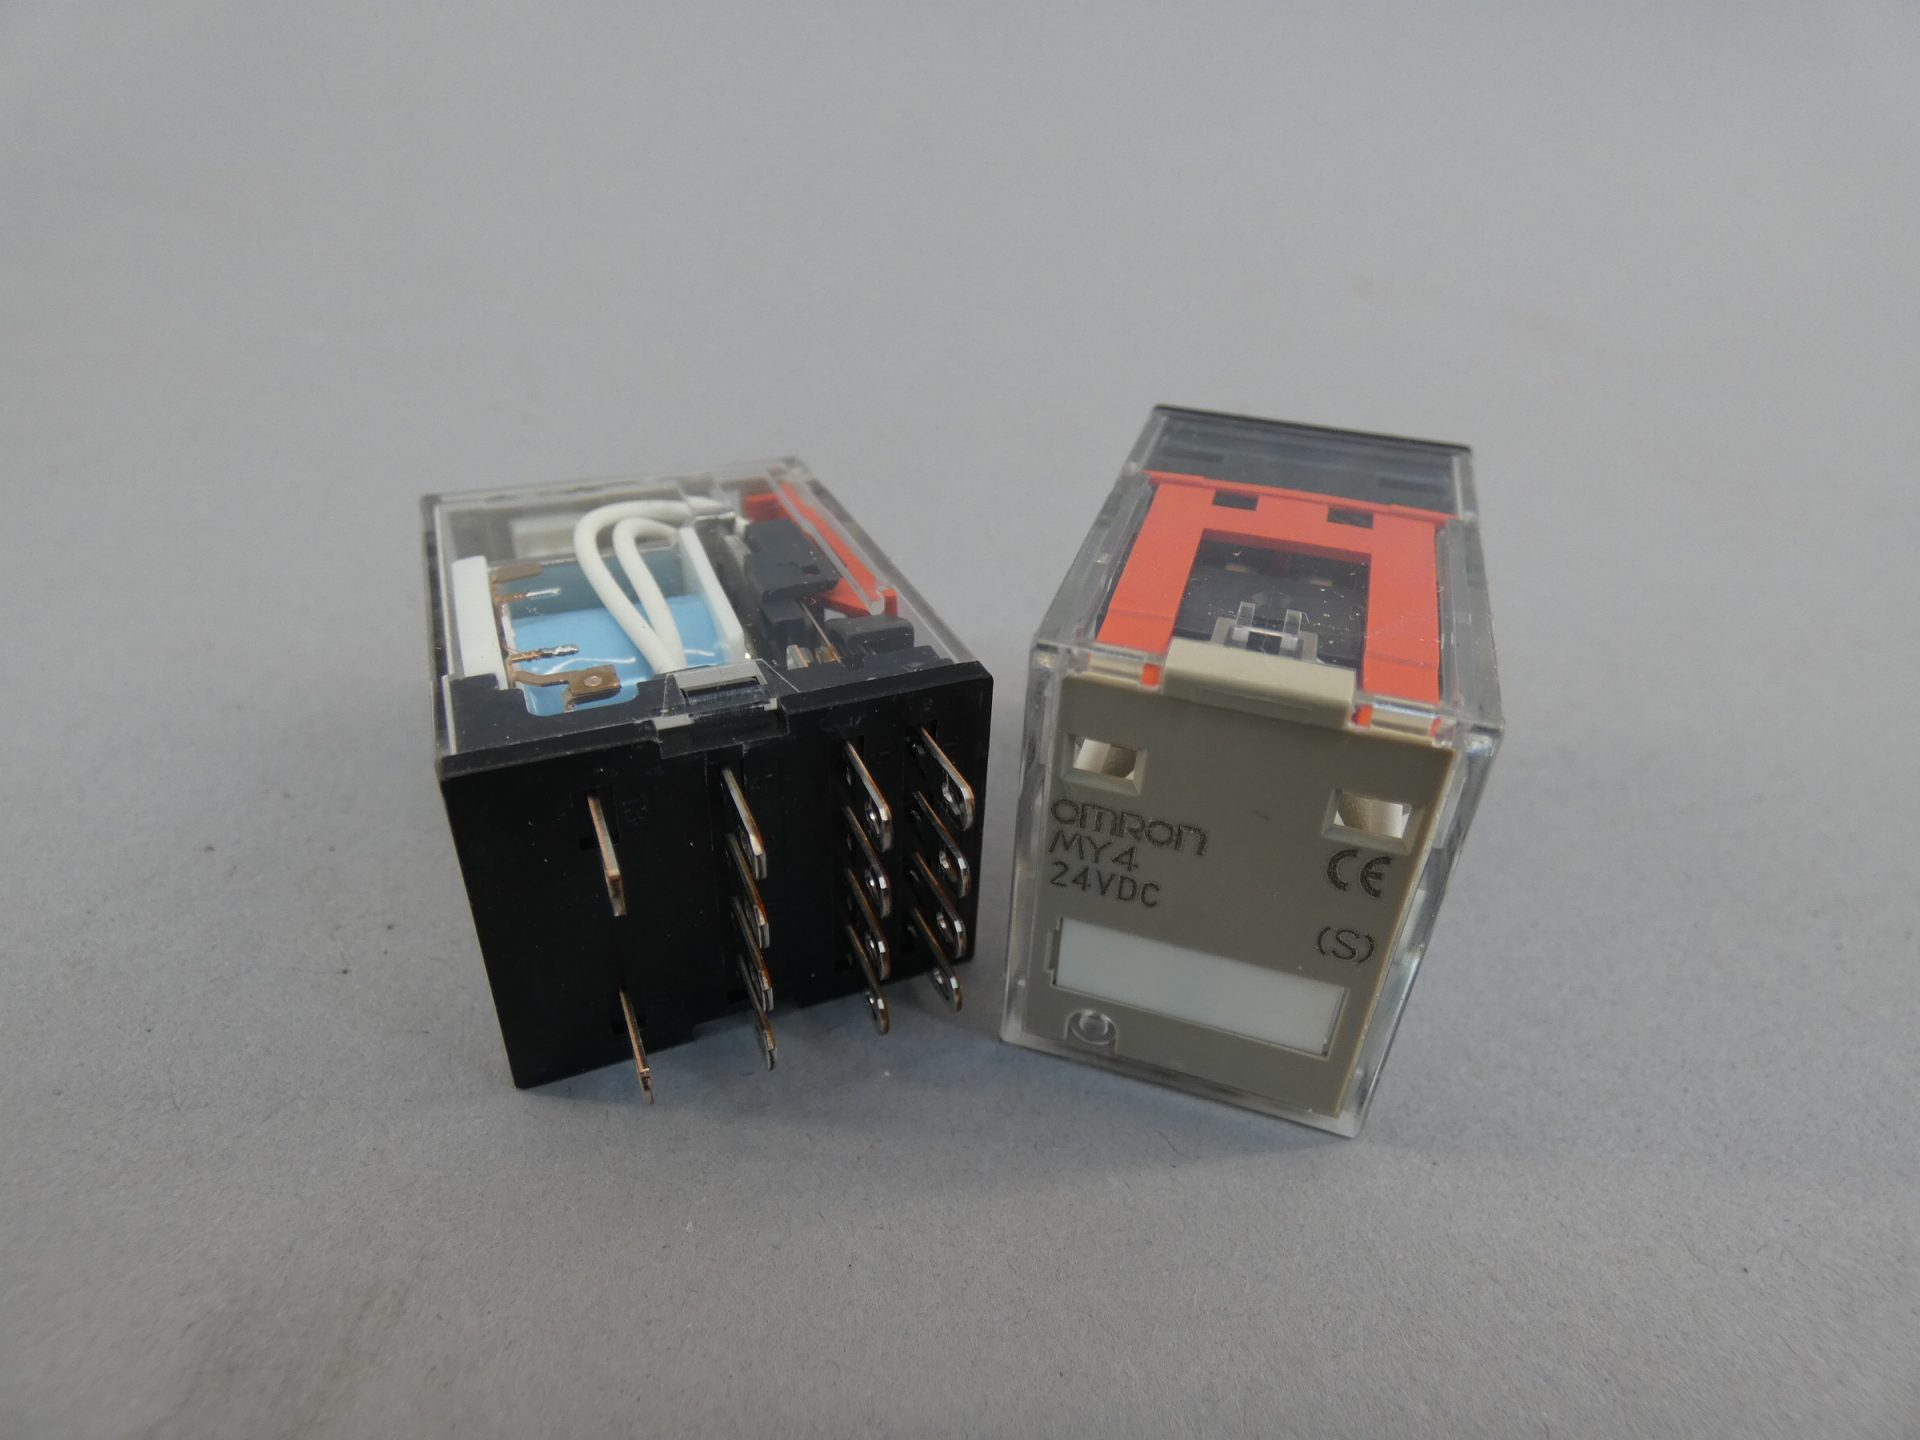 1X  Relay MY4  Coil DC24V  4PDT 5A Relais MY4-24Vdc  type  OMRON